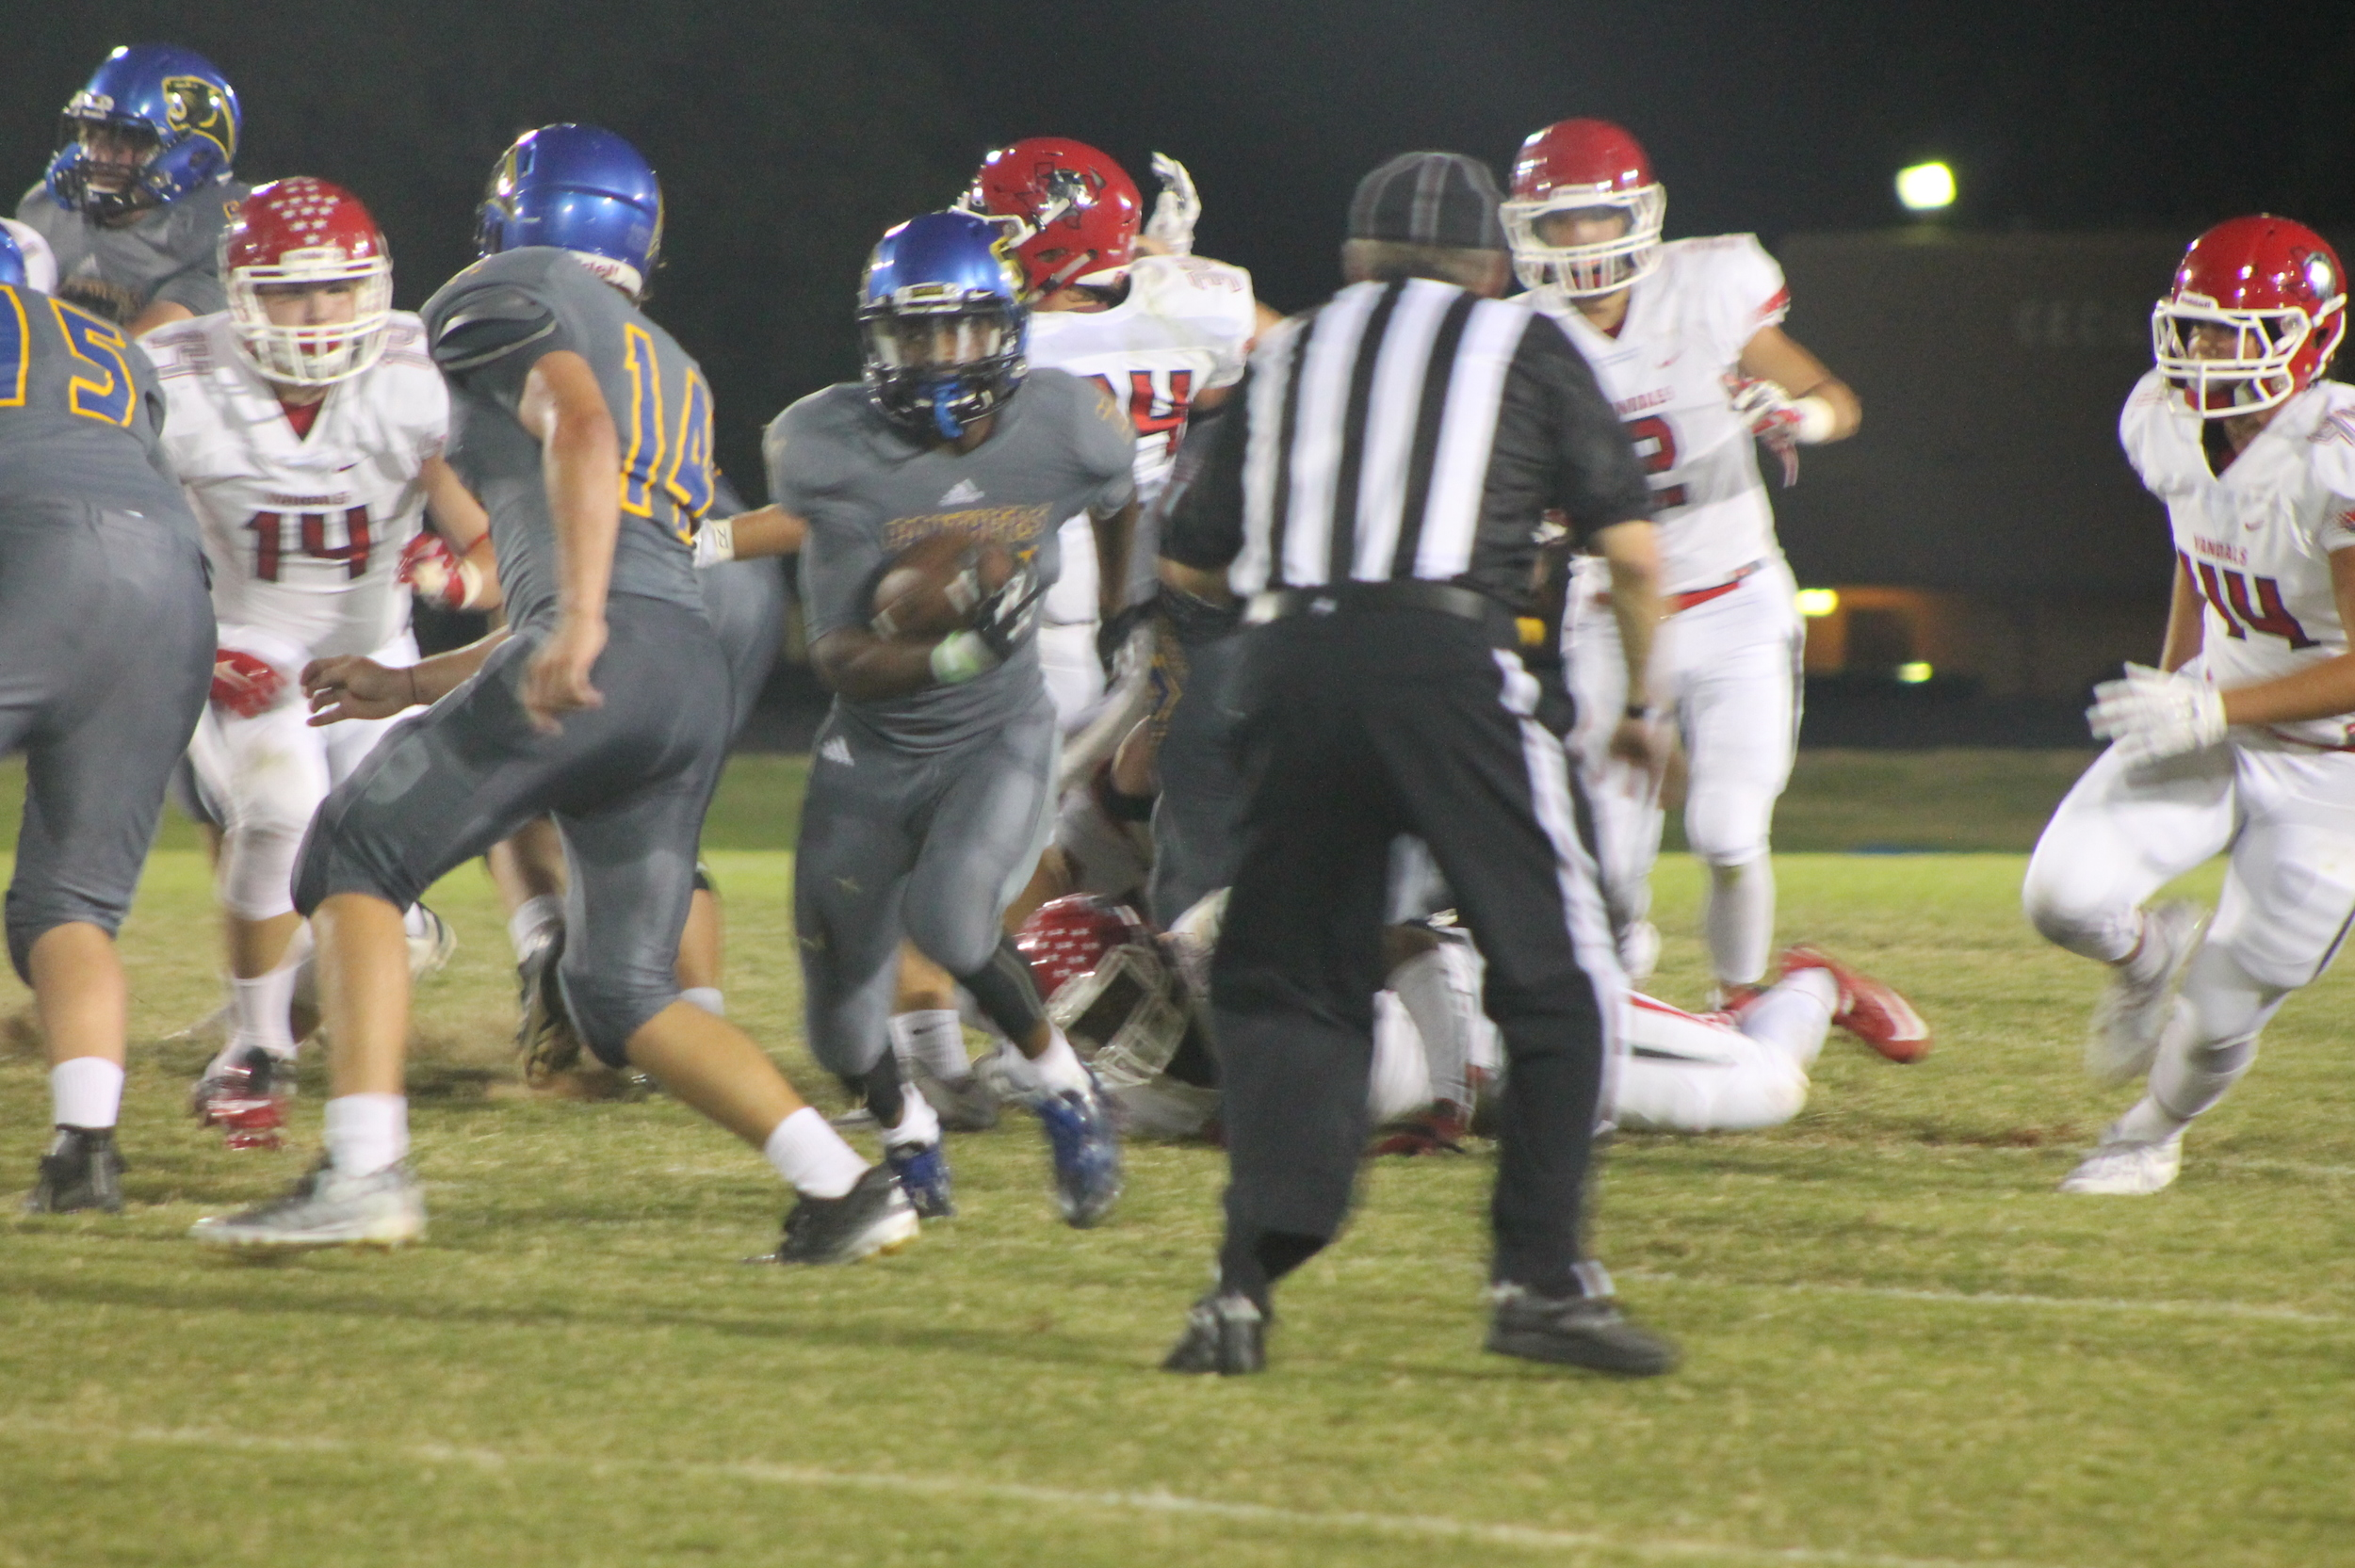 (Photo by Maddy Routon) Javon Franklin cutting through the line against Van.